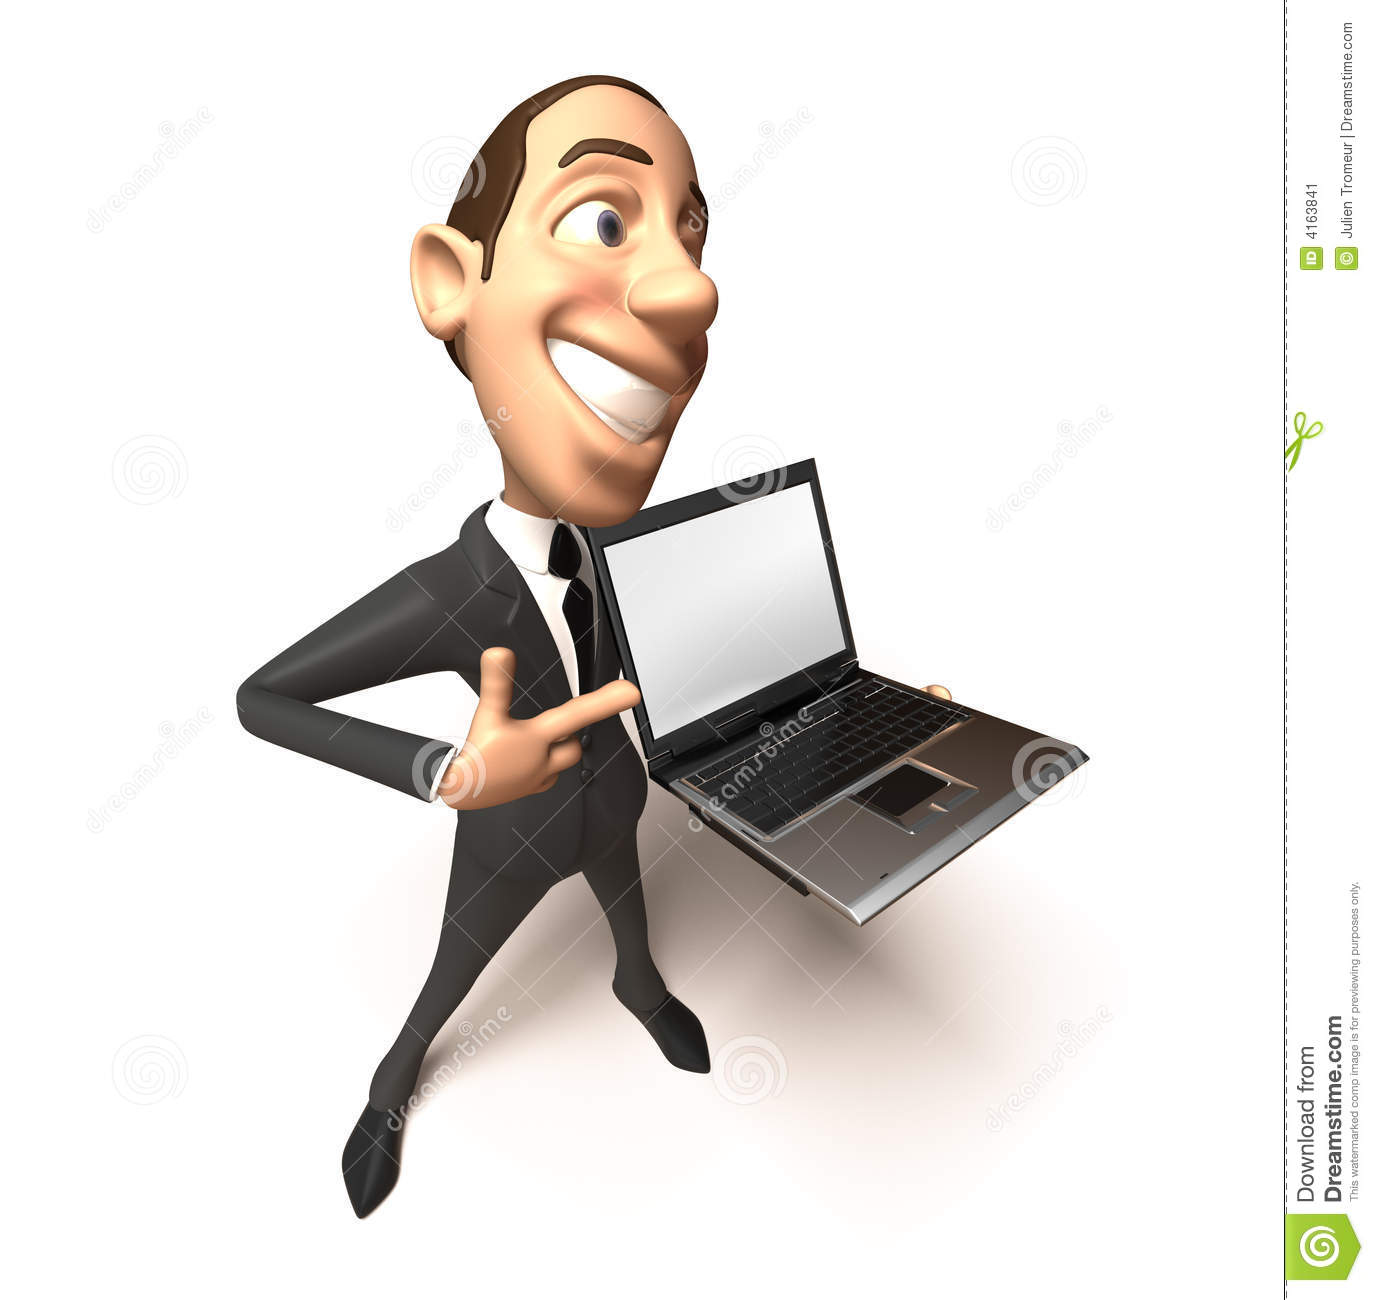 Salesman, businessman with a laptop, 3d generated.